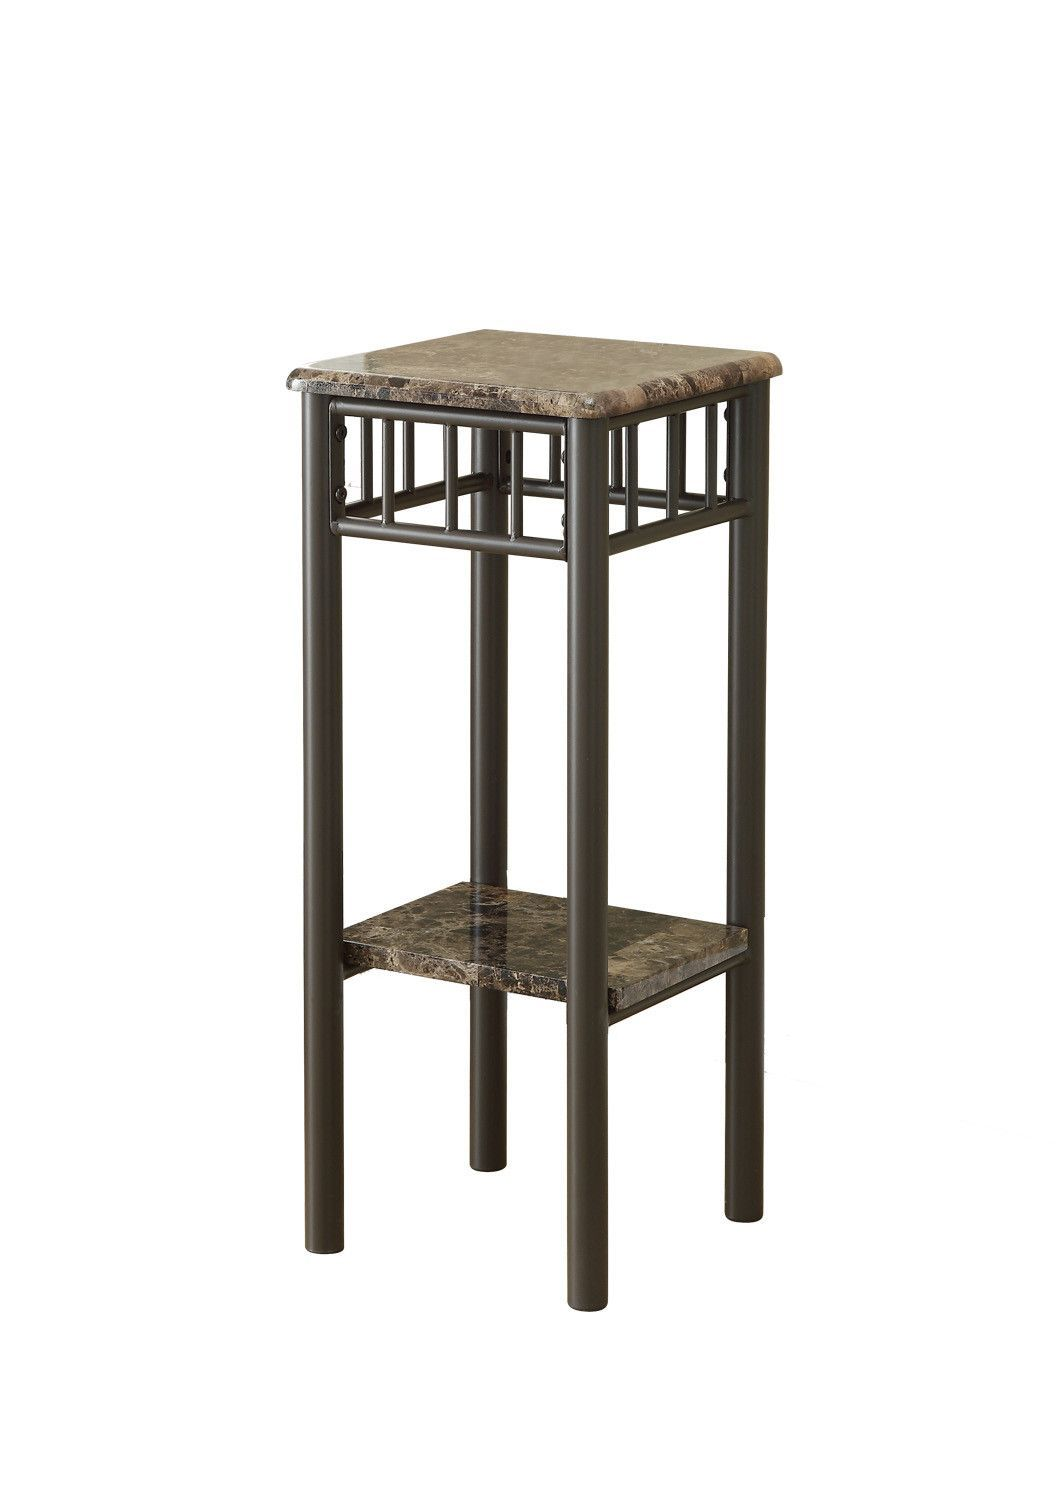 Accent Table Cappuccino Marble Bronze Metal Metal Accent Table Metal Plant Stand Small Lamps